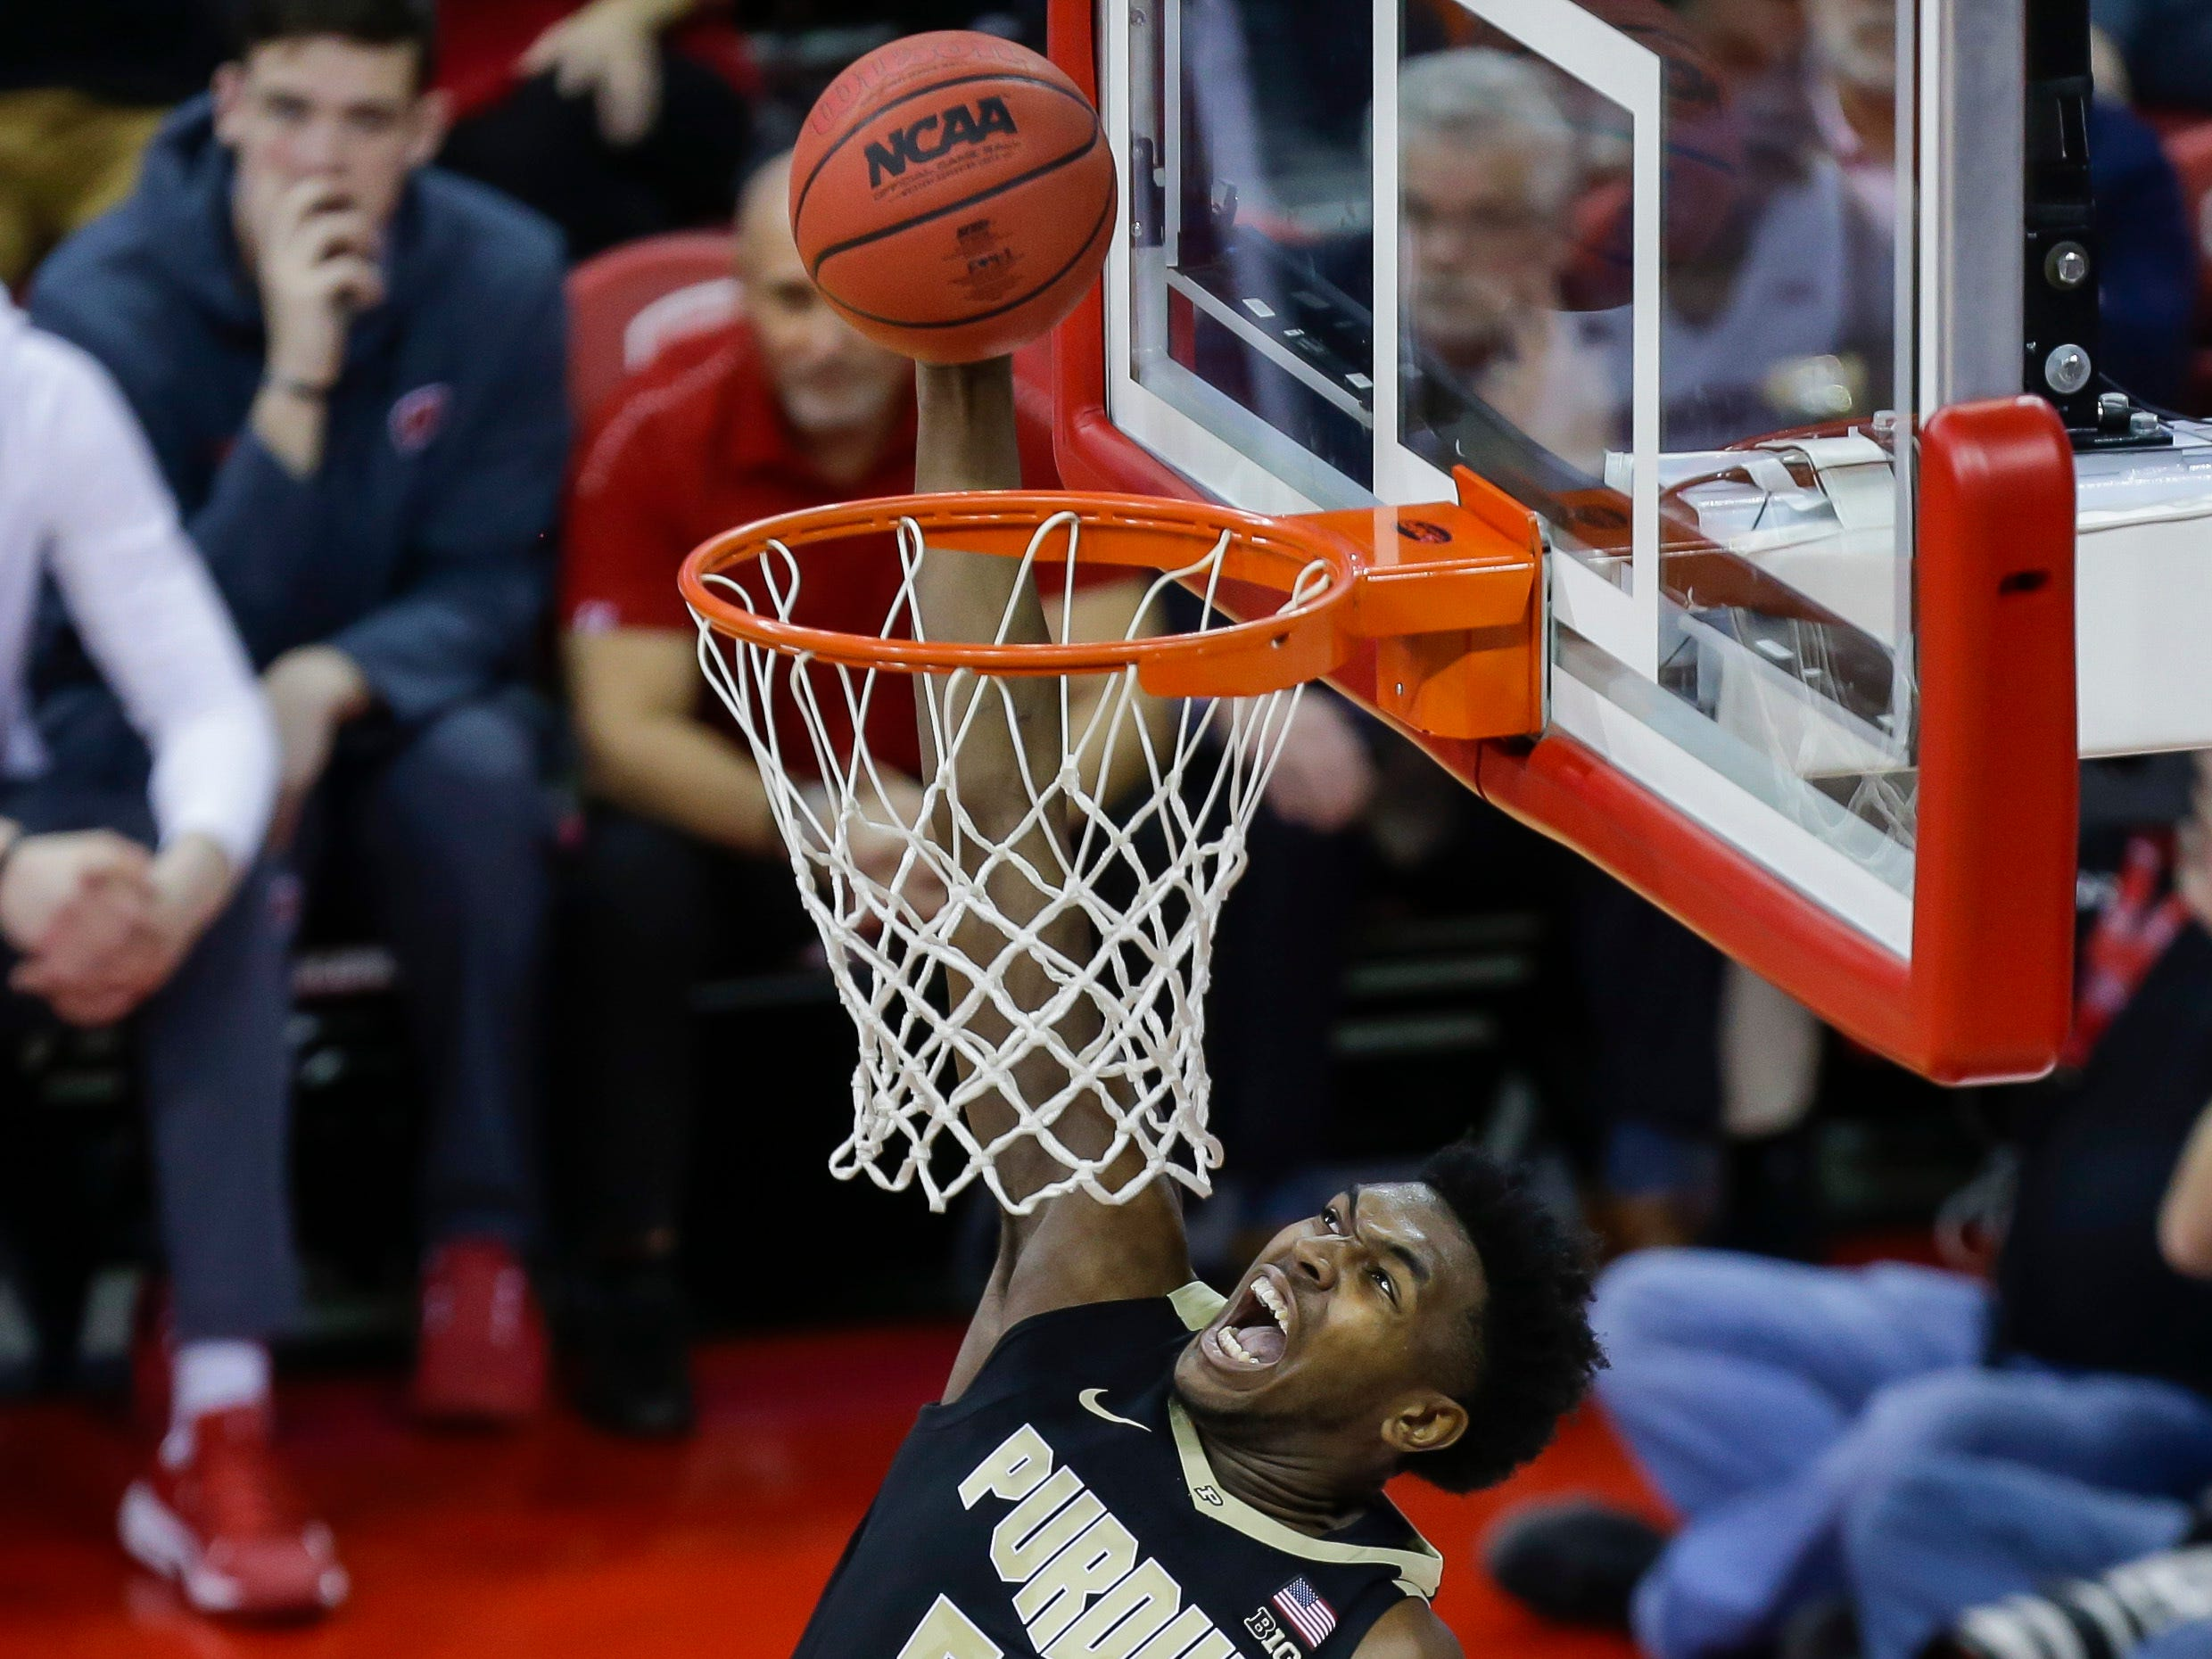 Purdue's Trevion Williams hammers down a dunk against Wisconsin's Nate Reuvers during the first half Friday.